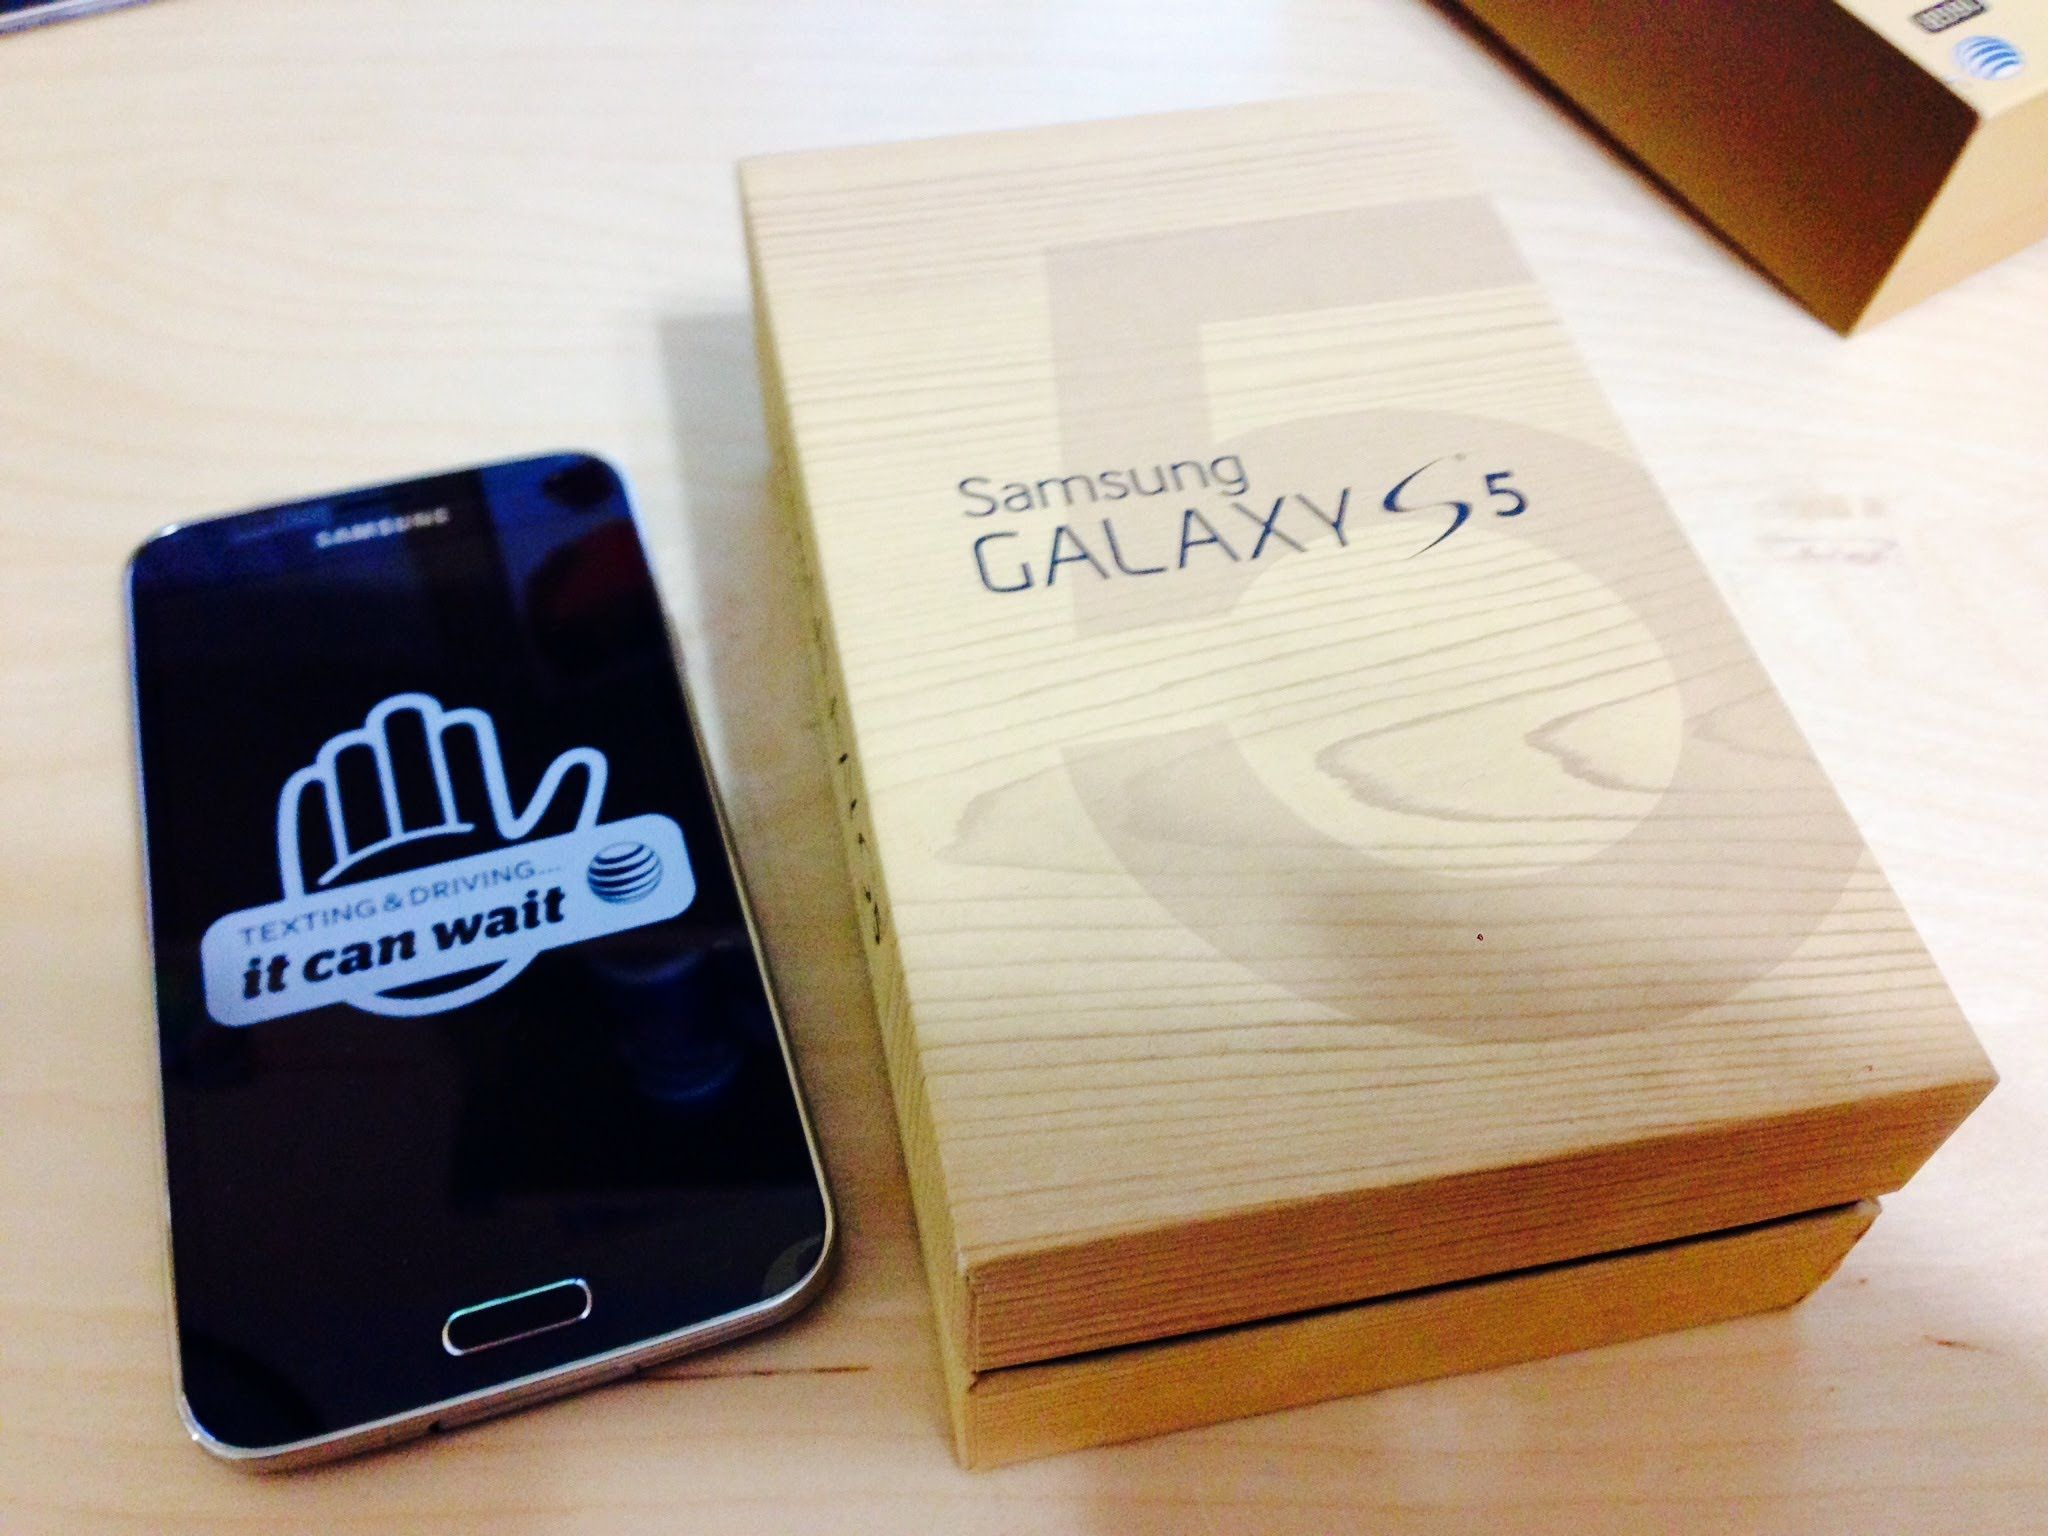 Unpacking Samsung Galaxy S5 80GB Storage Getting Phone Ready For Use